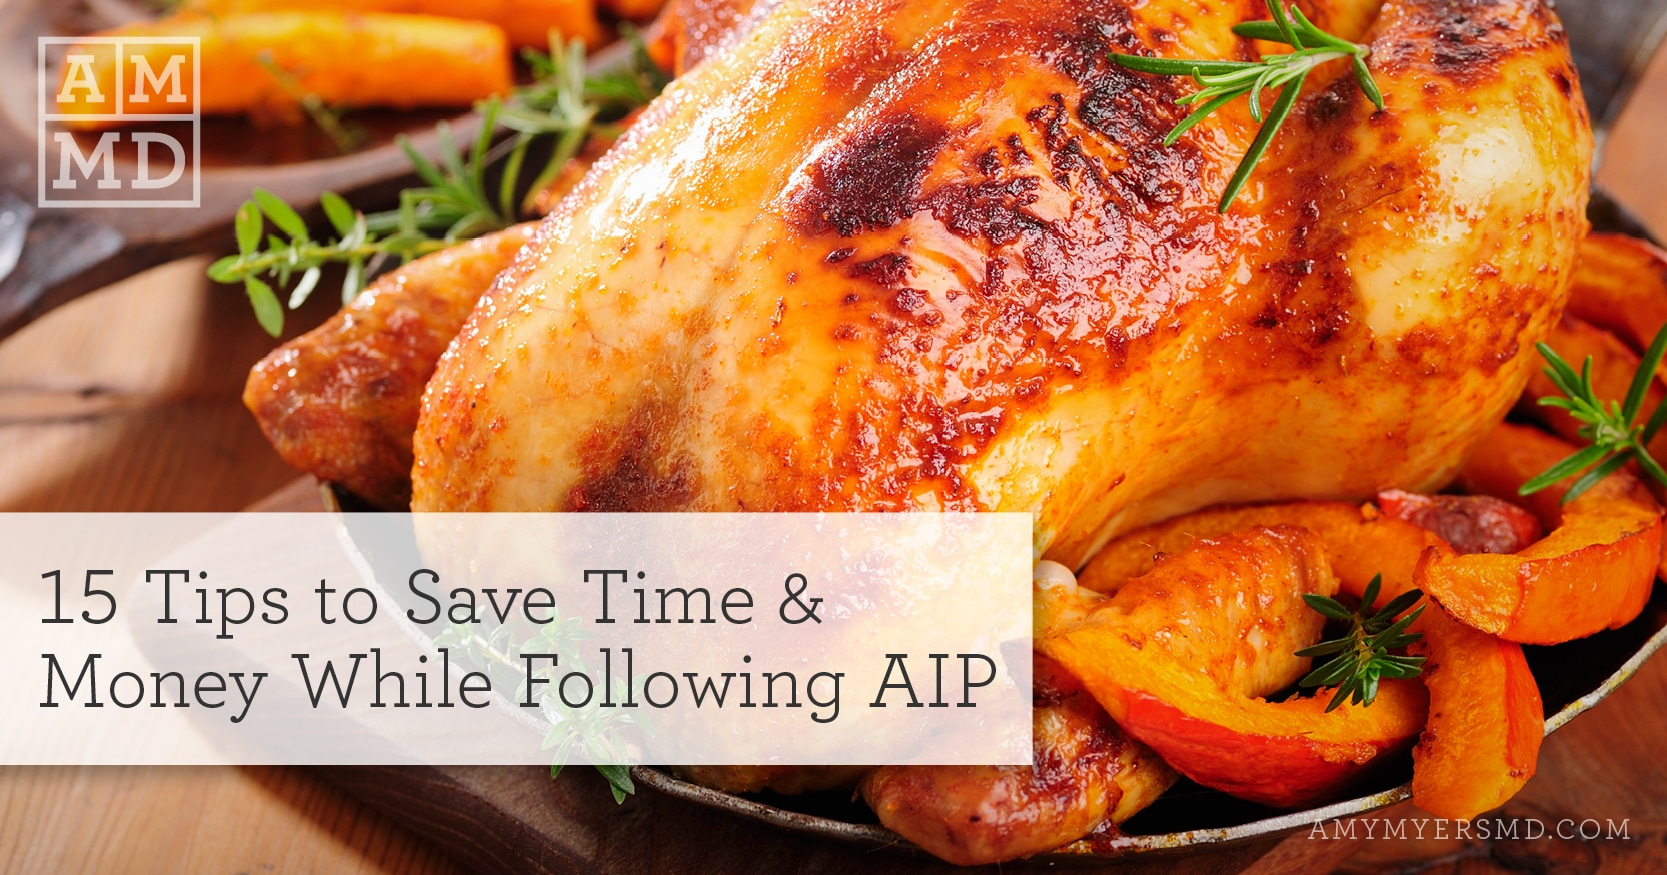 save time & money while following aip